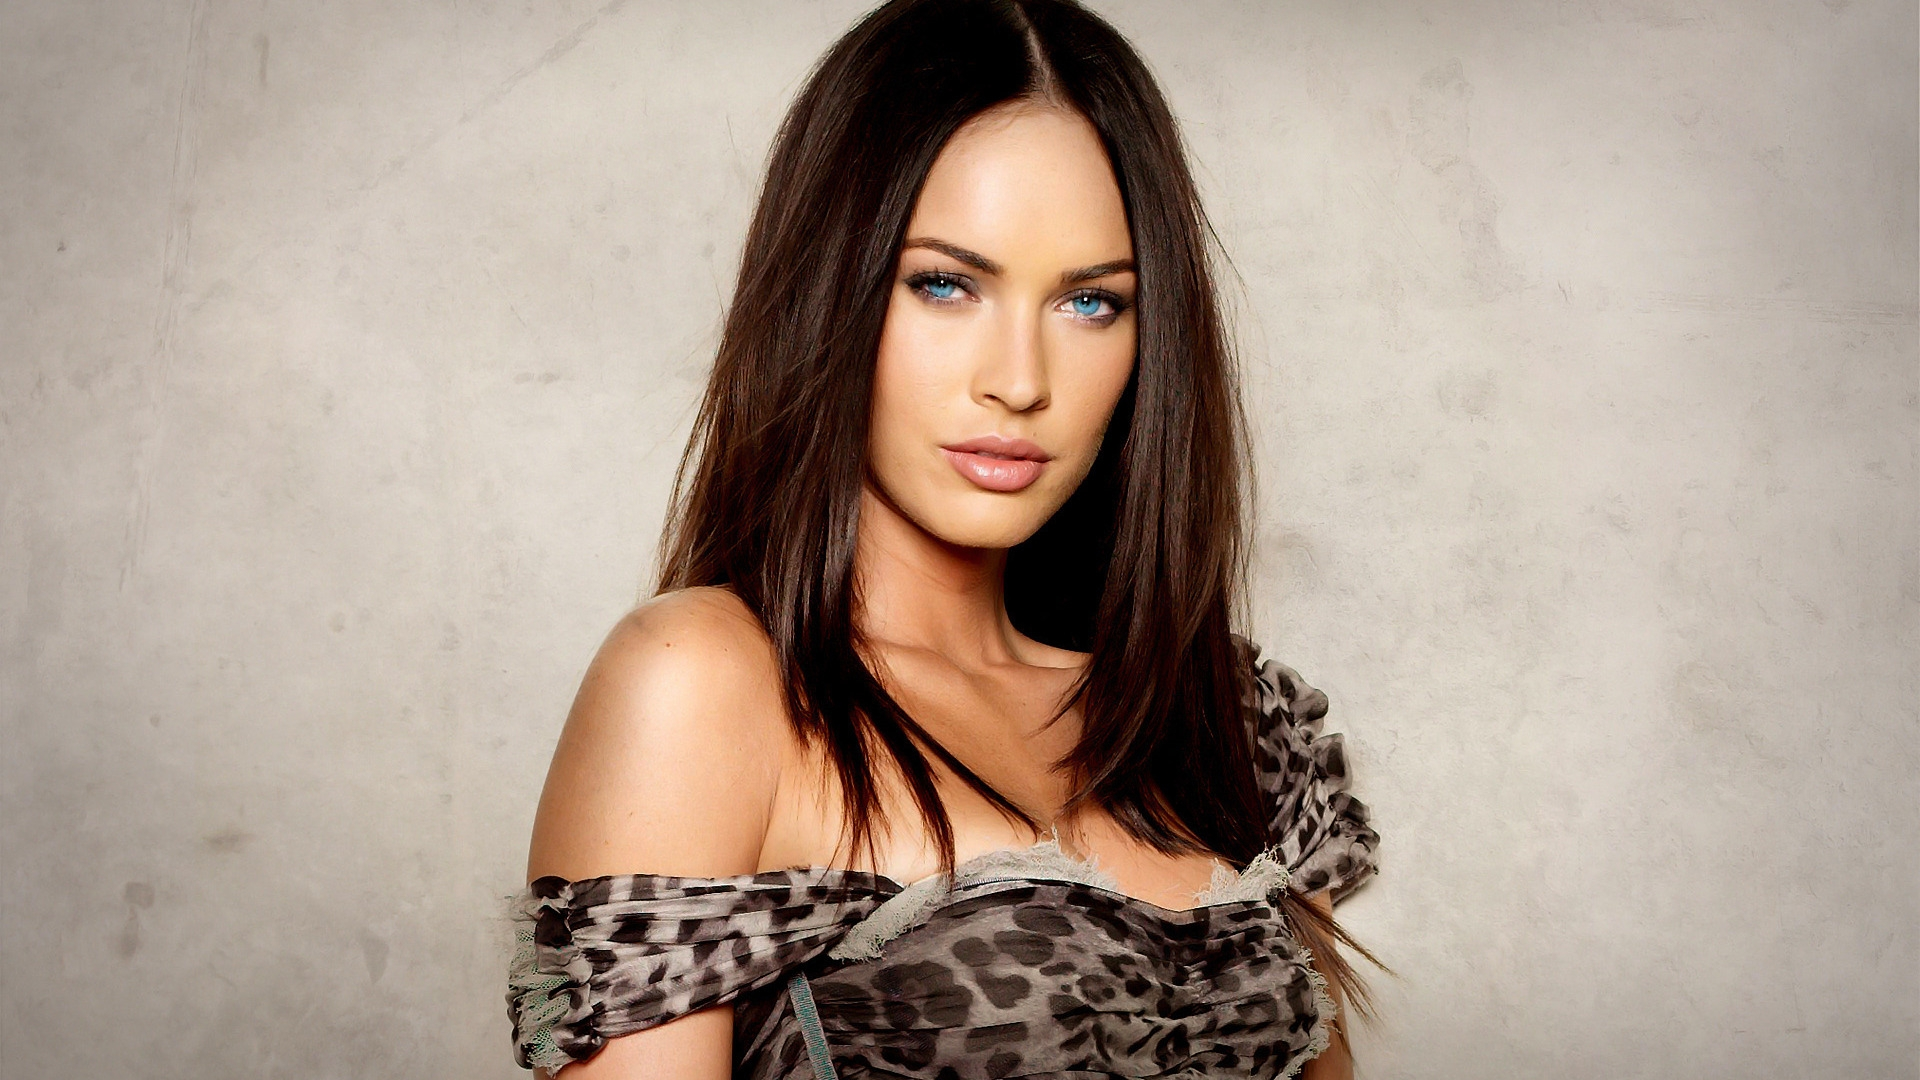 Beautiful Megan Fox Wallpaper | 7.TH